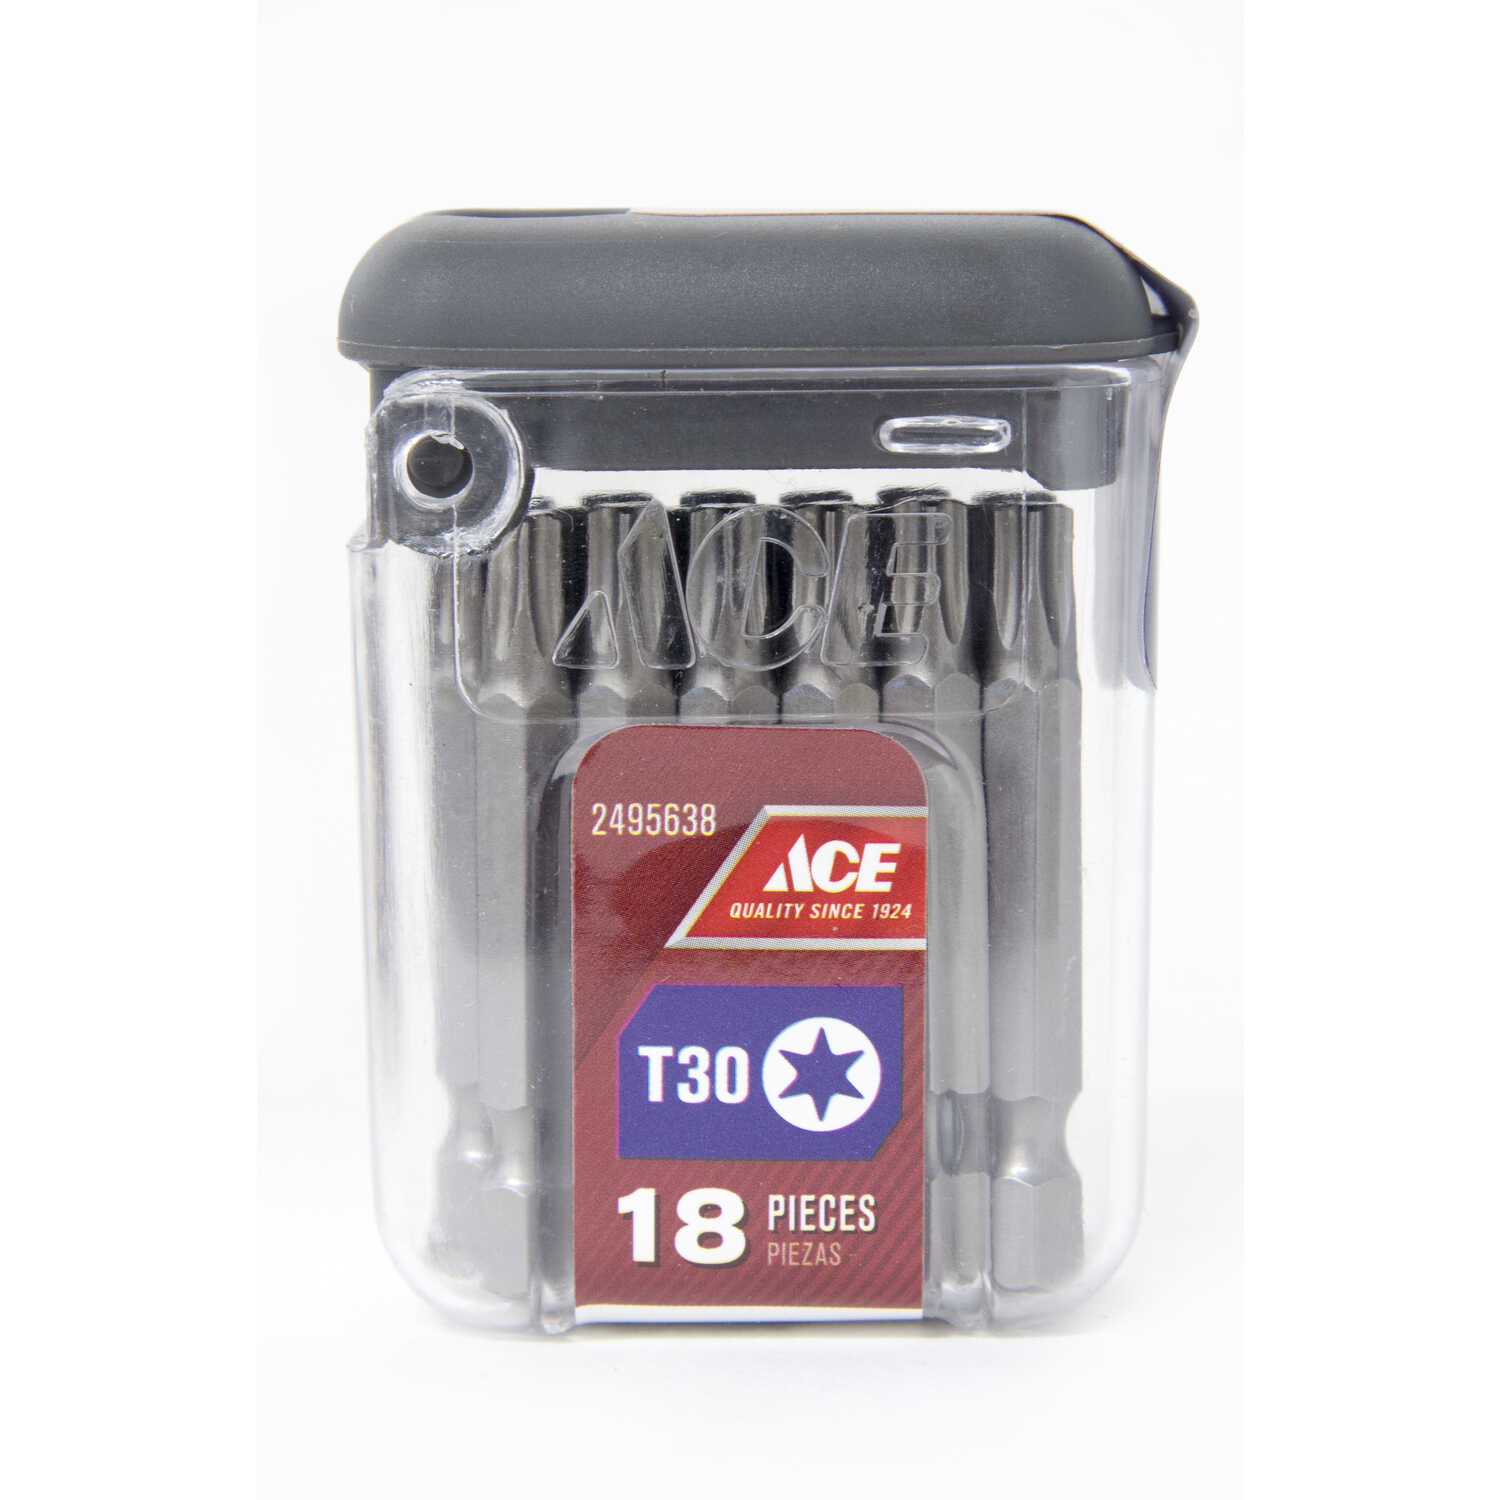 Ace  Torx  T30   x 2 in. L Screwdriver Bit  S2 Tool Steel  1/4 in. Quick-Change Hex Shank  18 pk